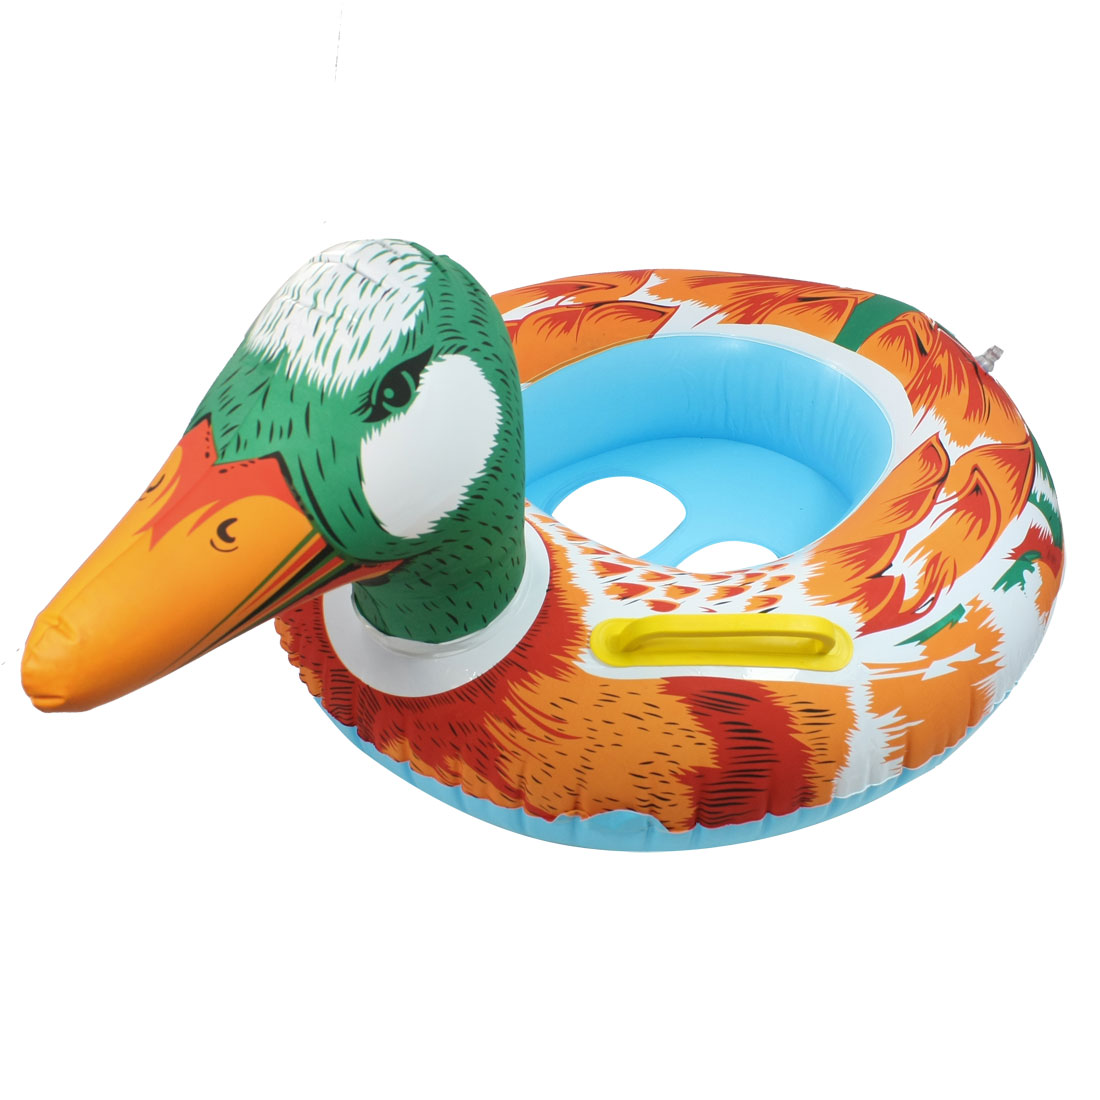 Blue Duck Design Swimming Ring Swim Float Seat Boat for Baby Toddler